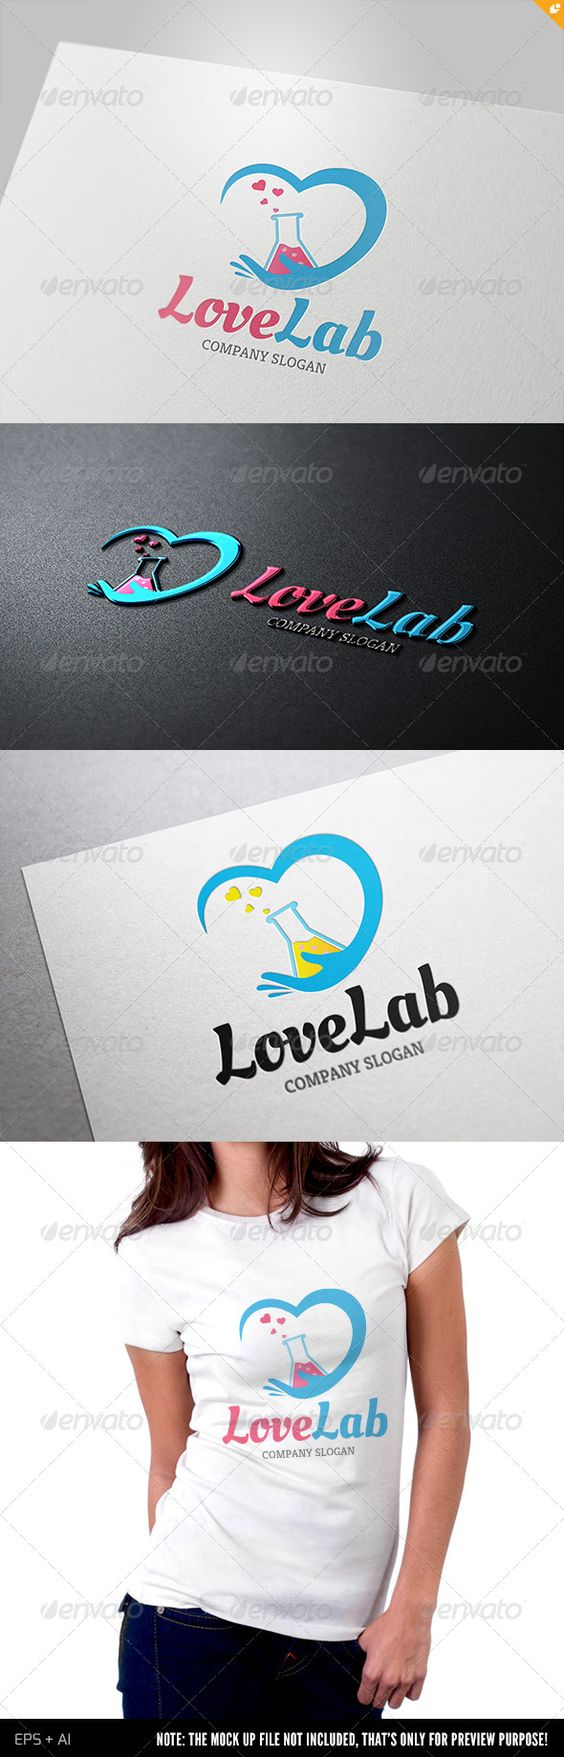 Love Lab Logo - GraphicRiver Item for Sale